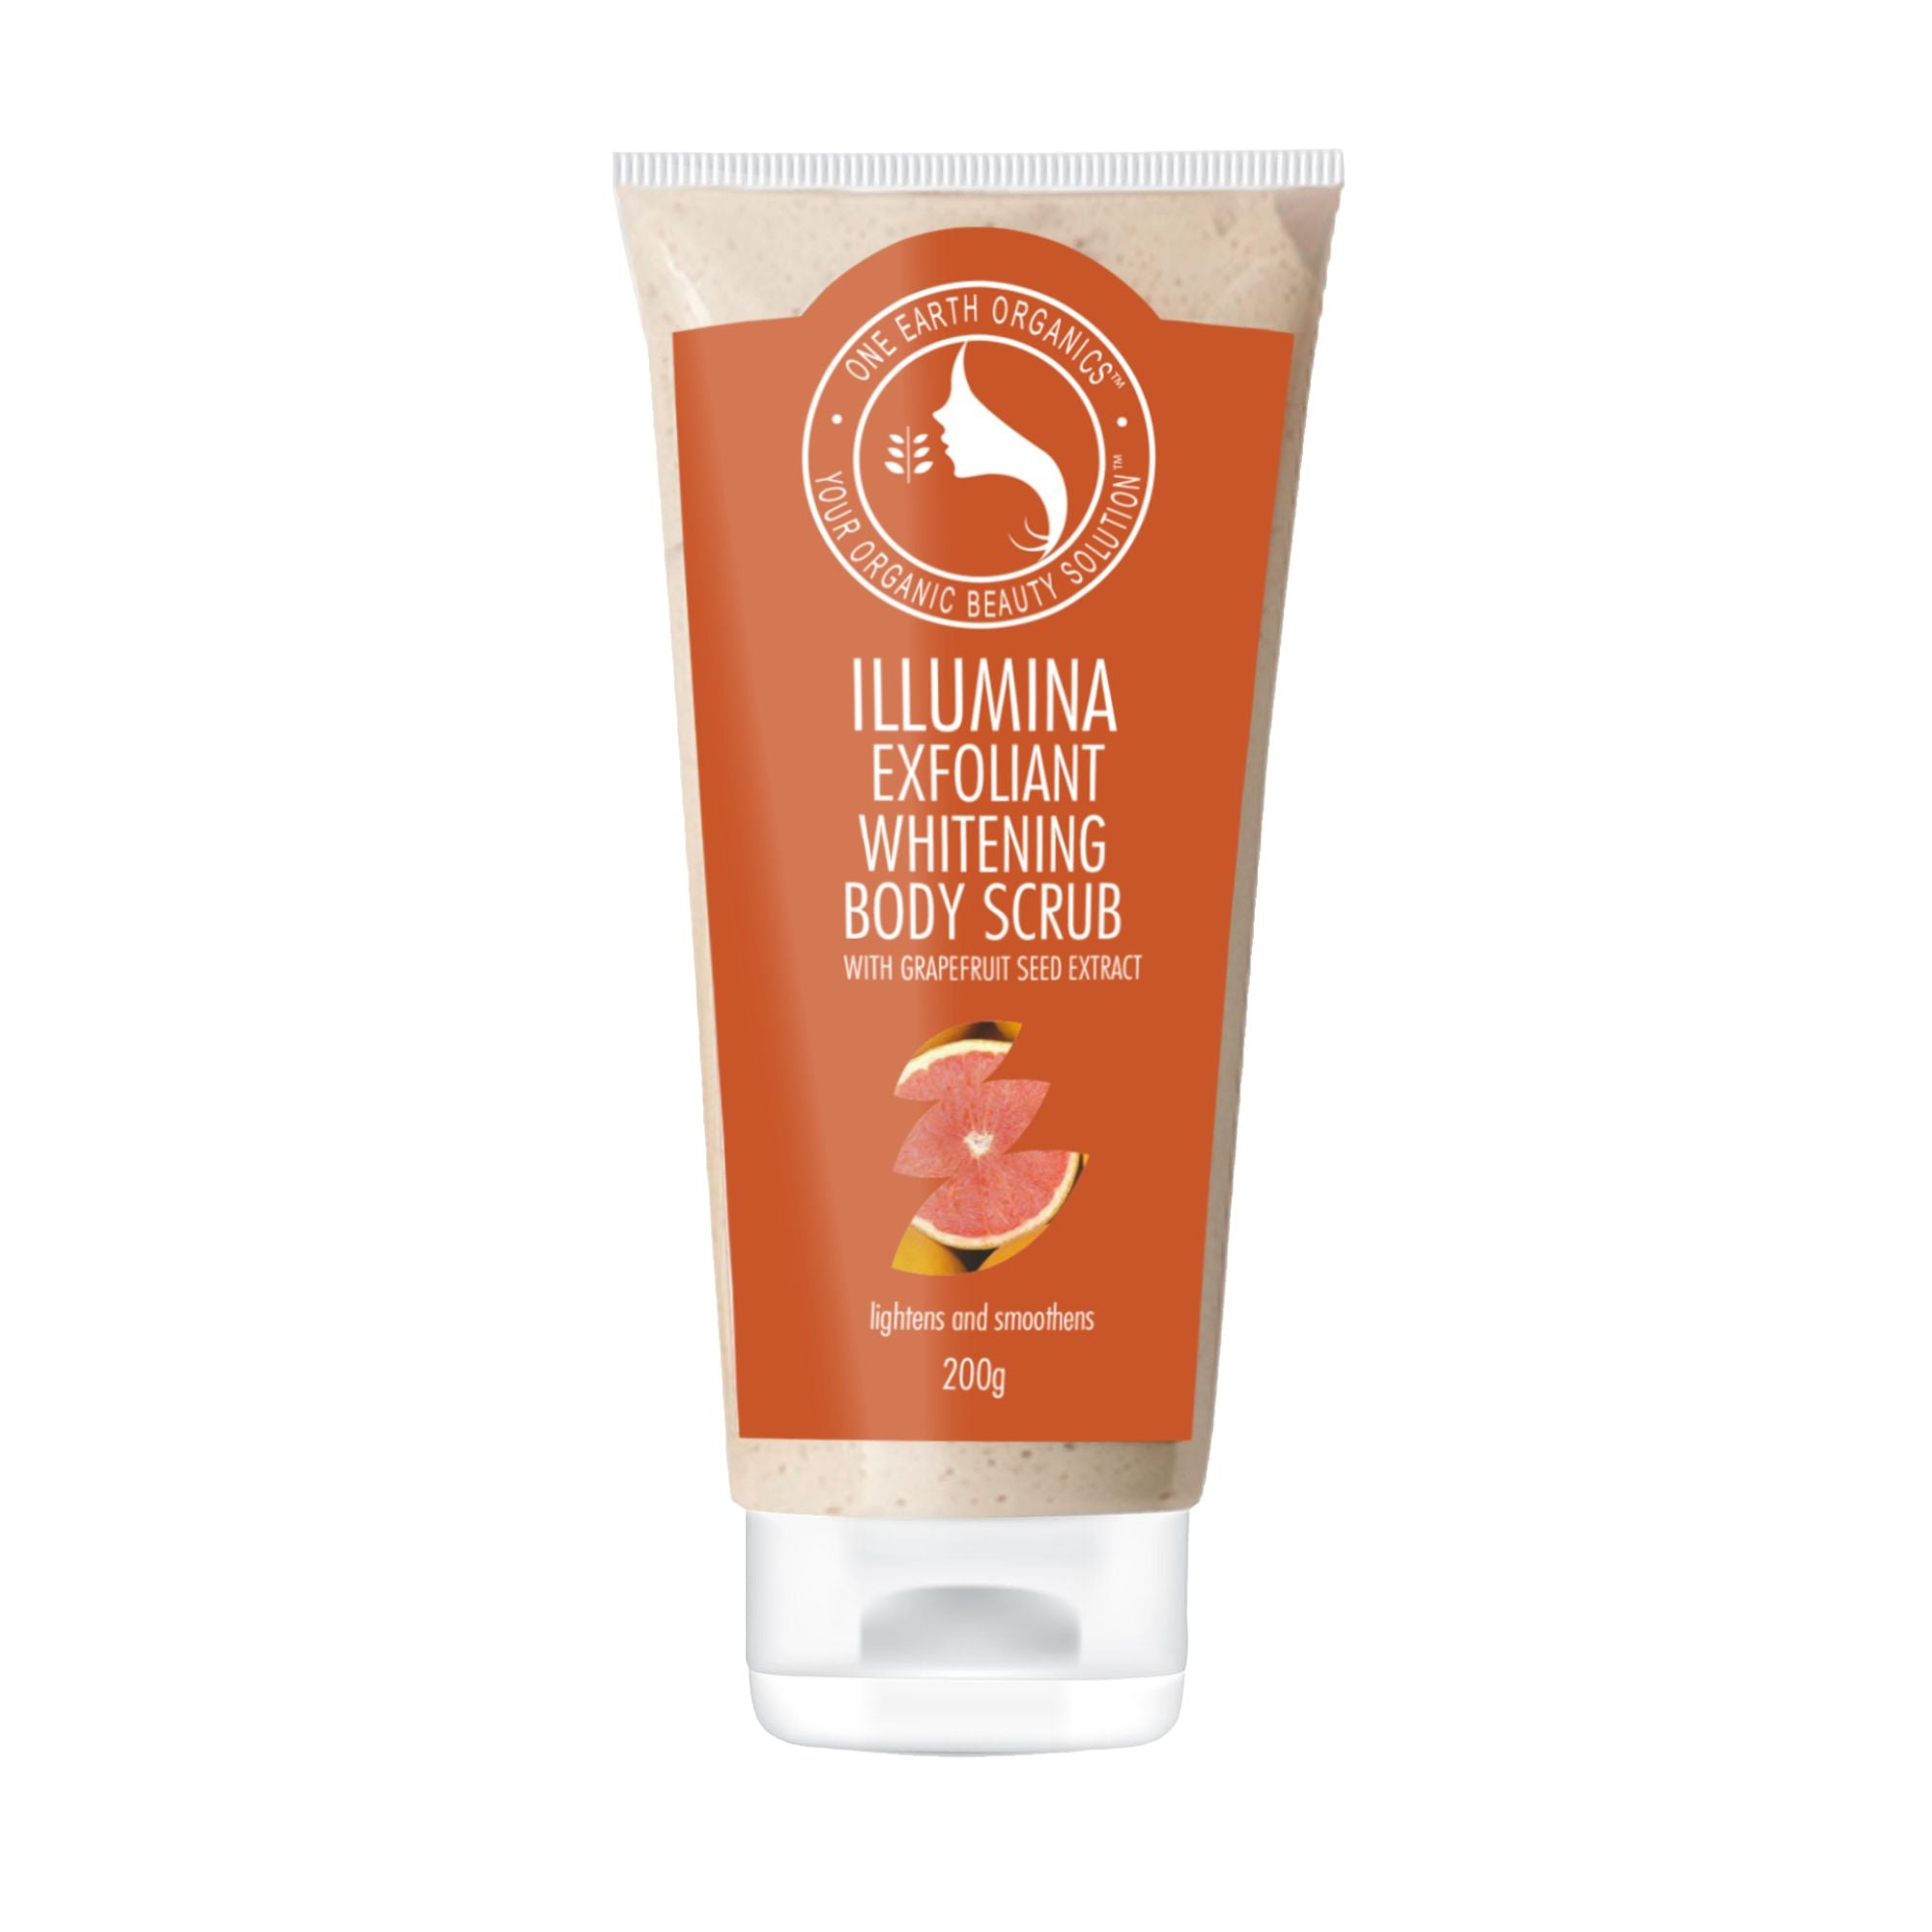 Illumina Exfoliant Whitening Body Scrub